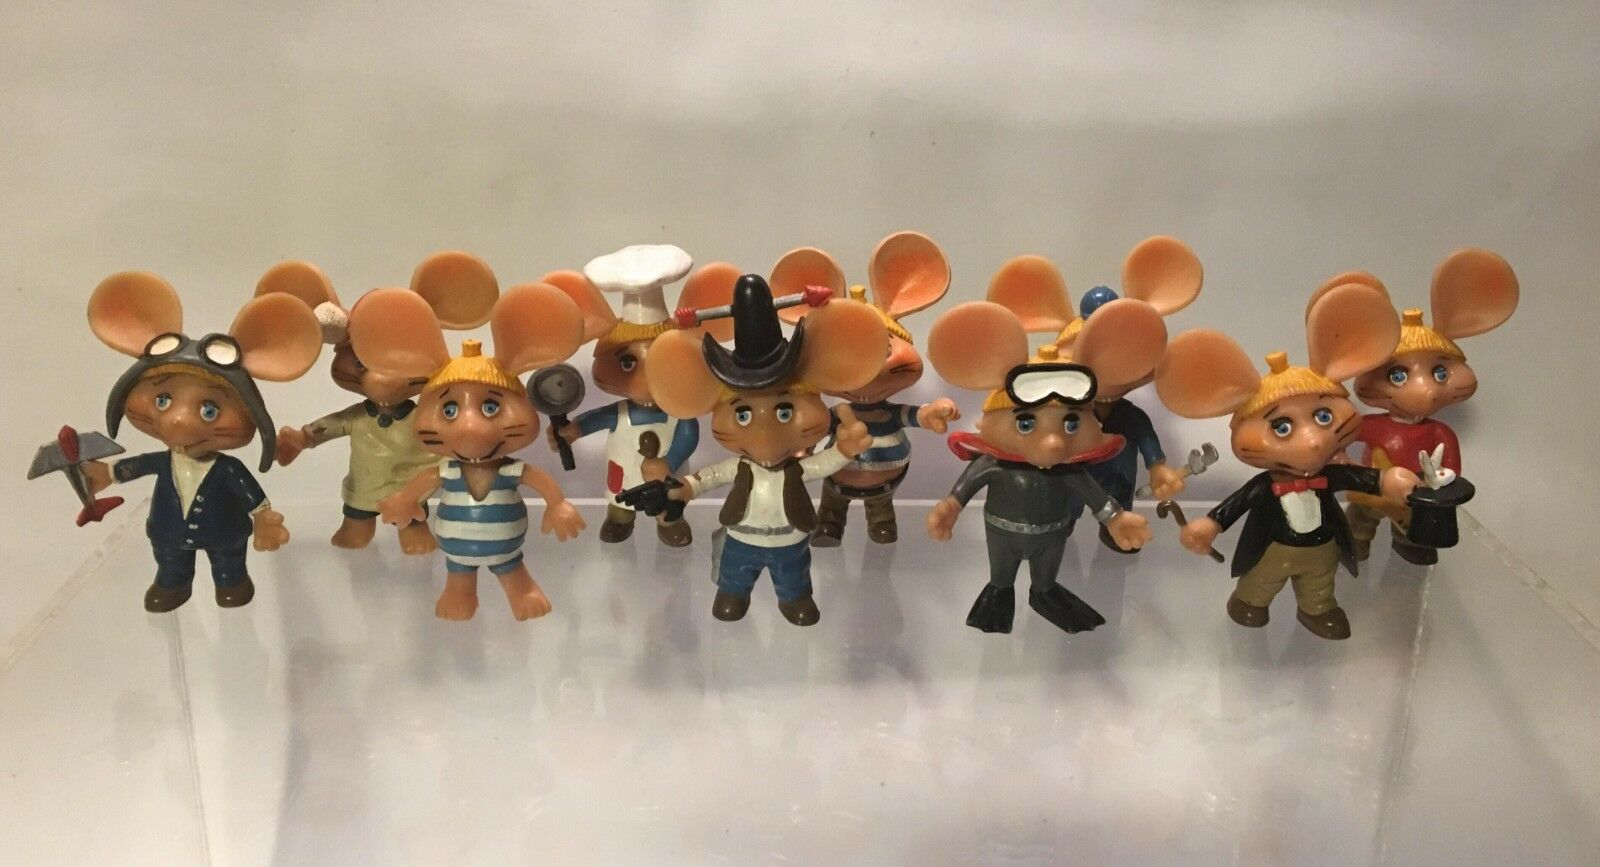 TOPO GIGIO COMP. COLLECTION 10 PVC FIGURES DISVENDA MAIA & BORGES PORTUGAL 1980s